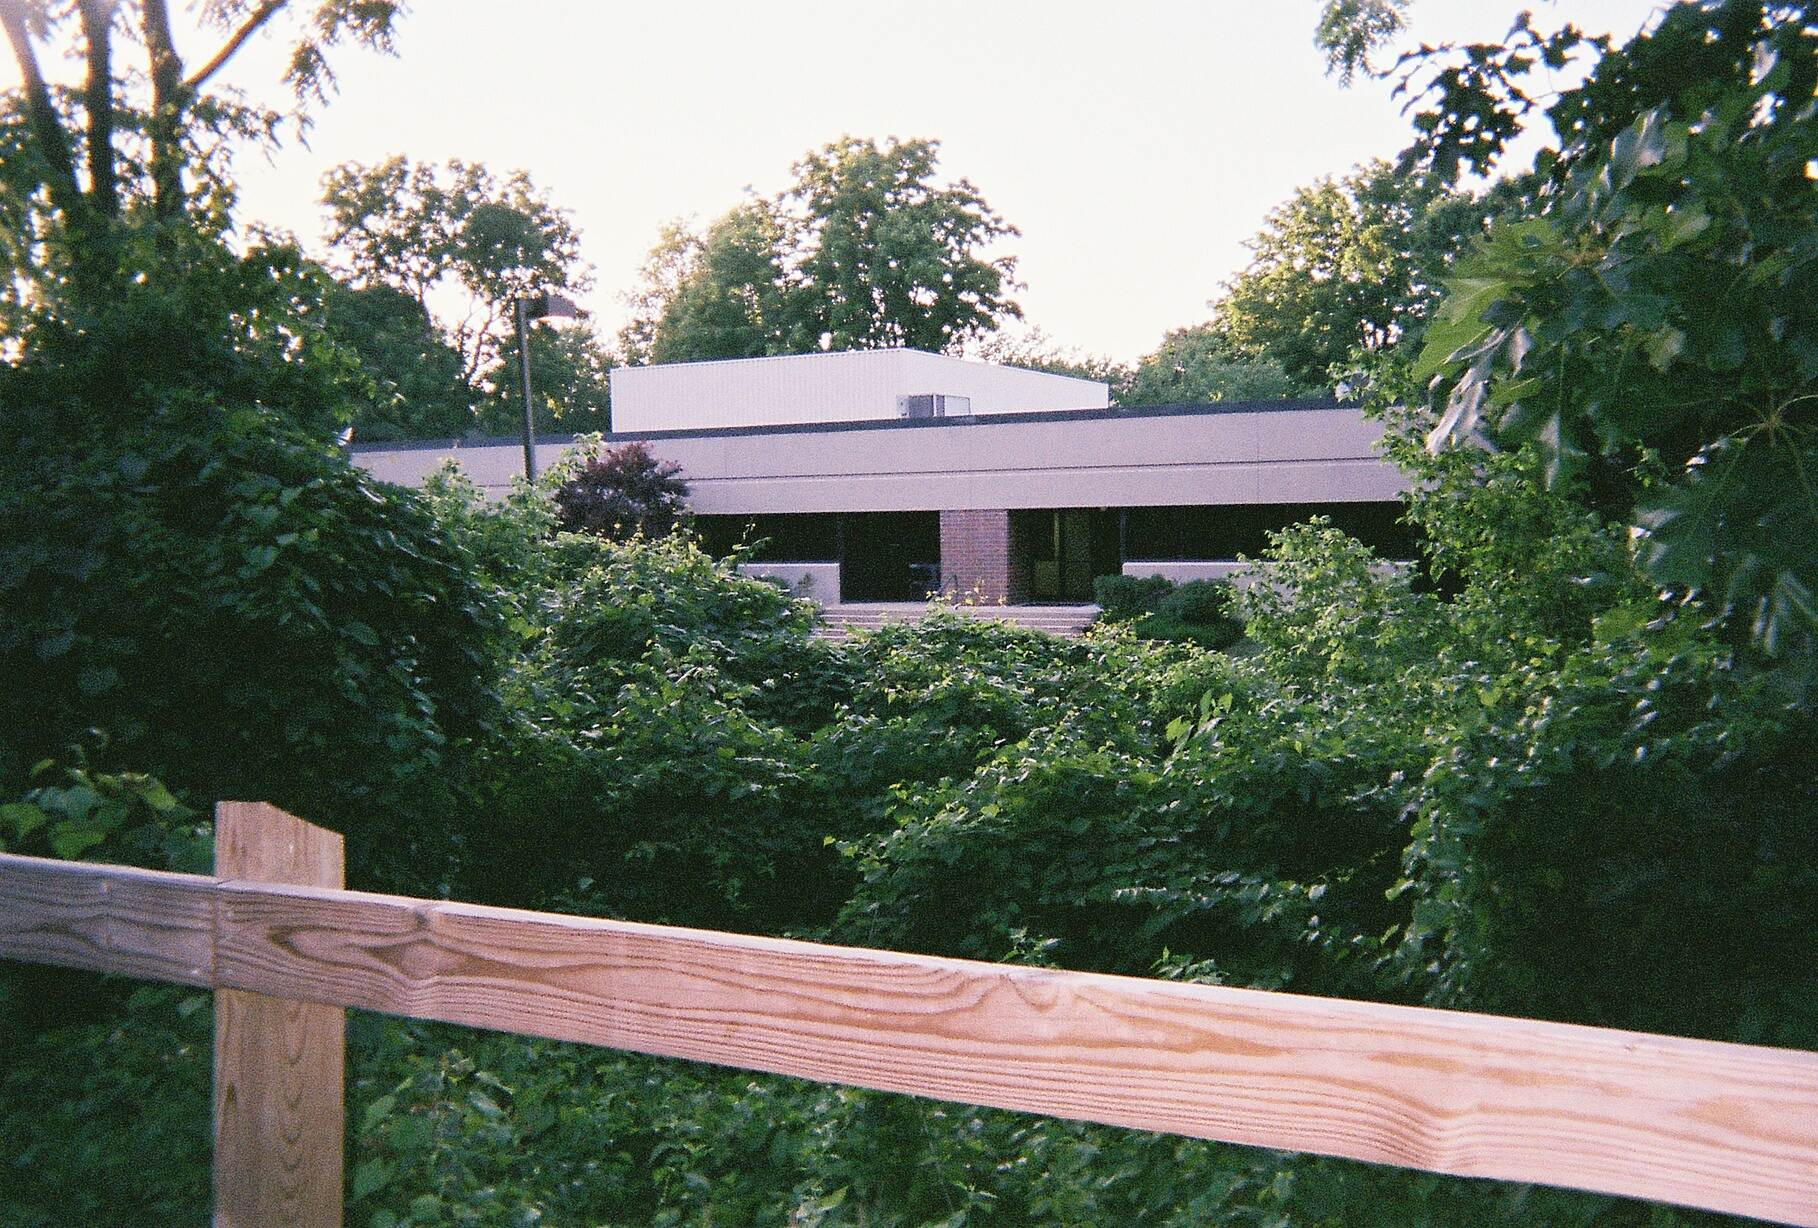 Chester Valley Trail Chester Valley Trail Office buildings are a common site along the trail. Some have already constructed access trails so employees can walk or cycle to and from work.